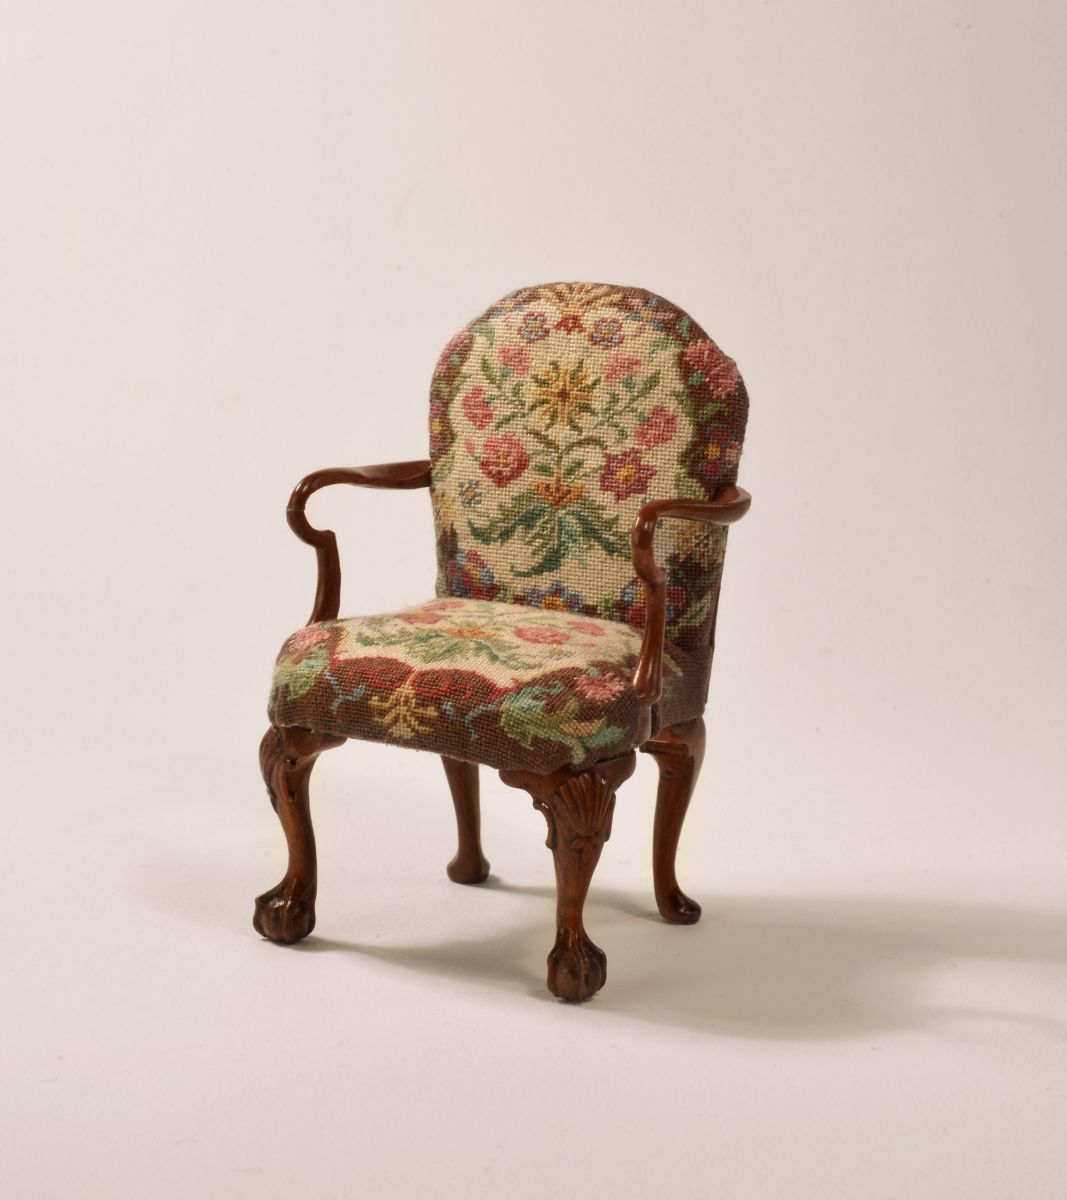 Petit point upholstery chair by Sue Baker & John Hodgson